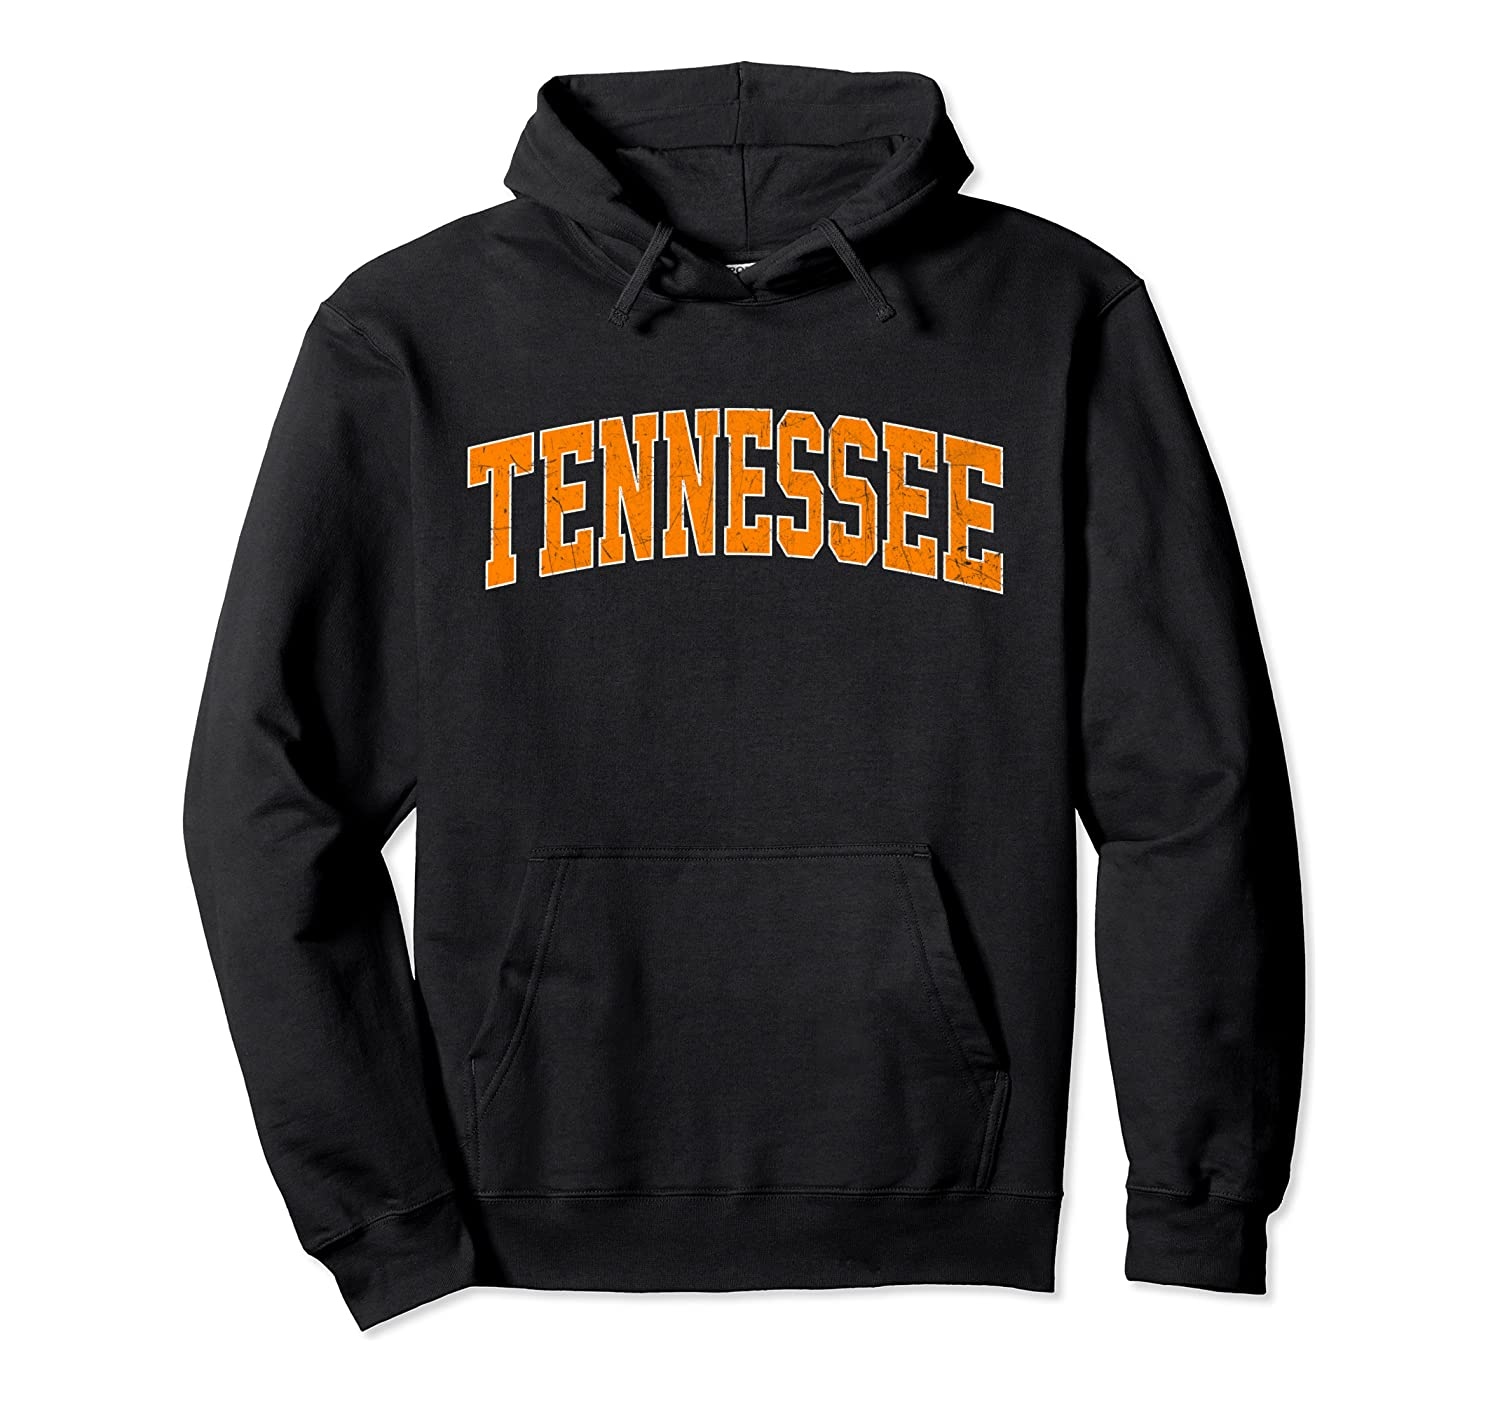 Tennessee TN vintage Athletic University & College Style Pullover Hoodie